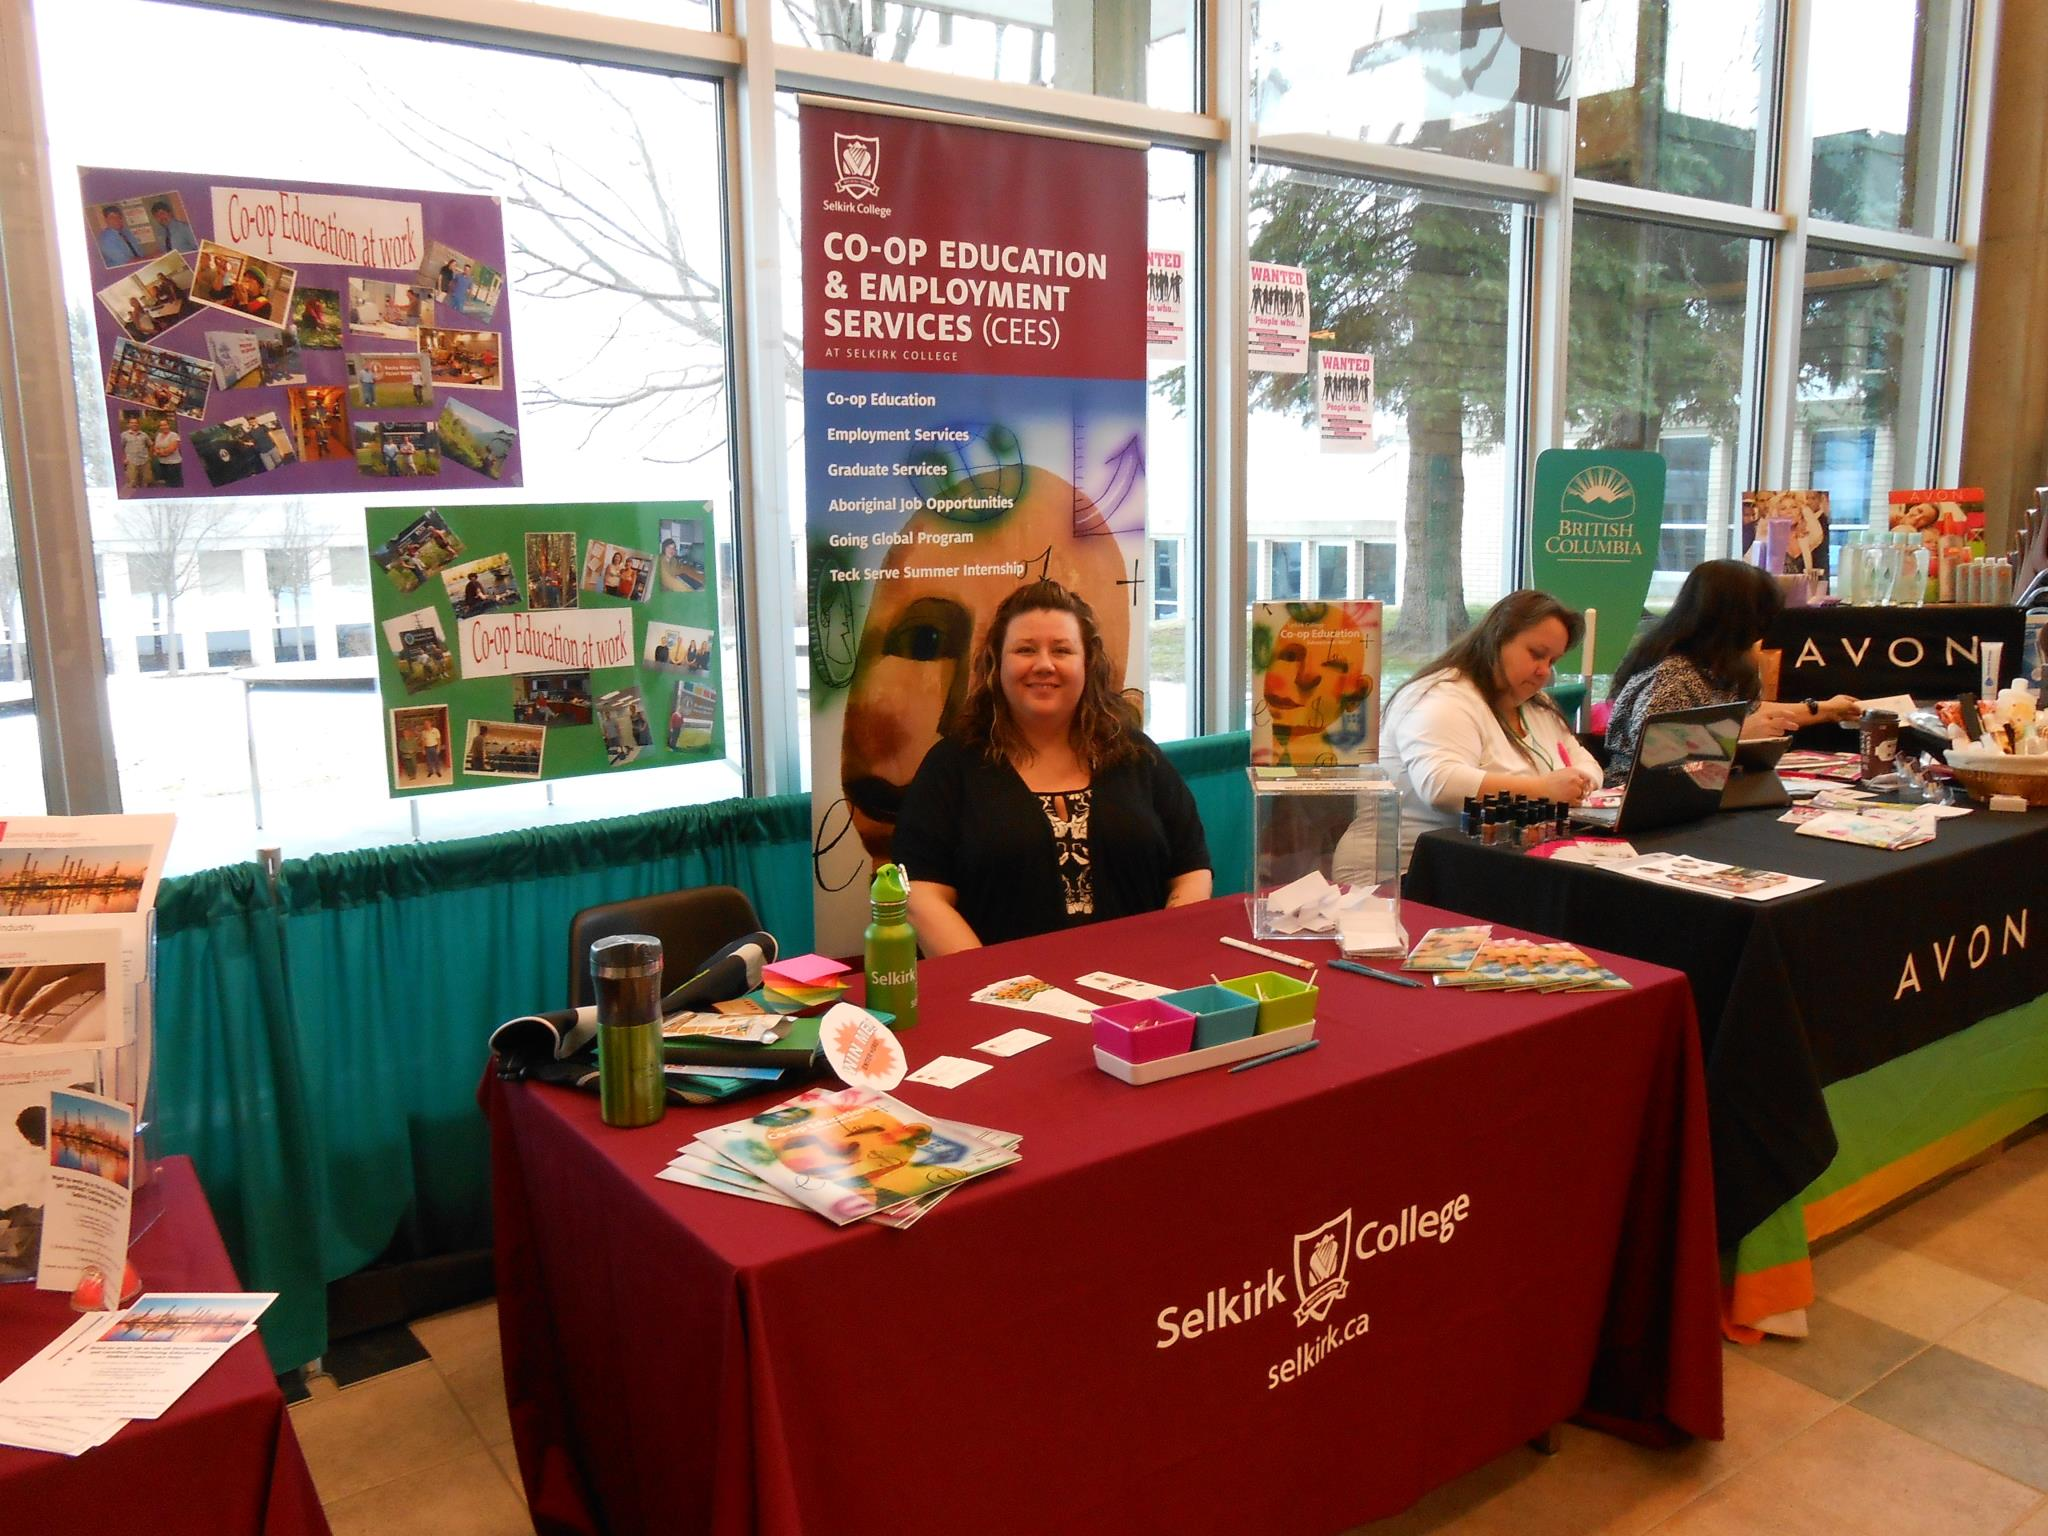 Selkirk college career & education fair co-op CEES presenters